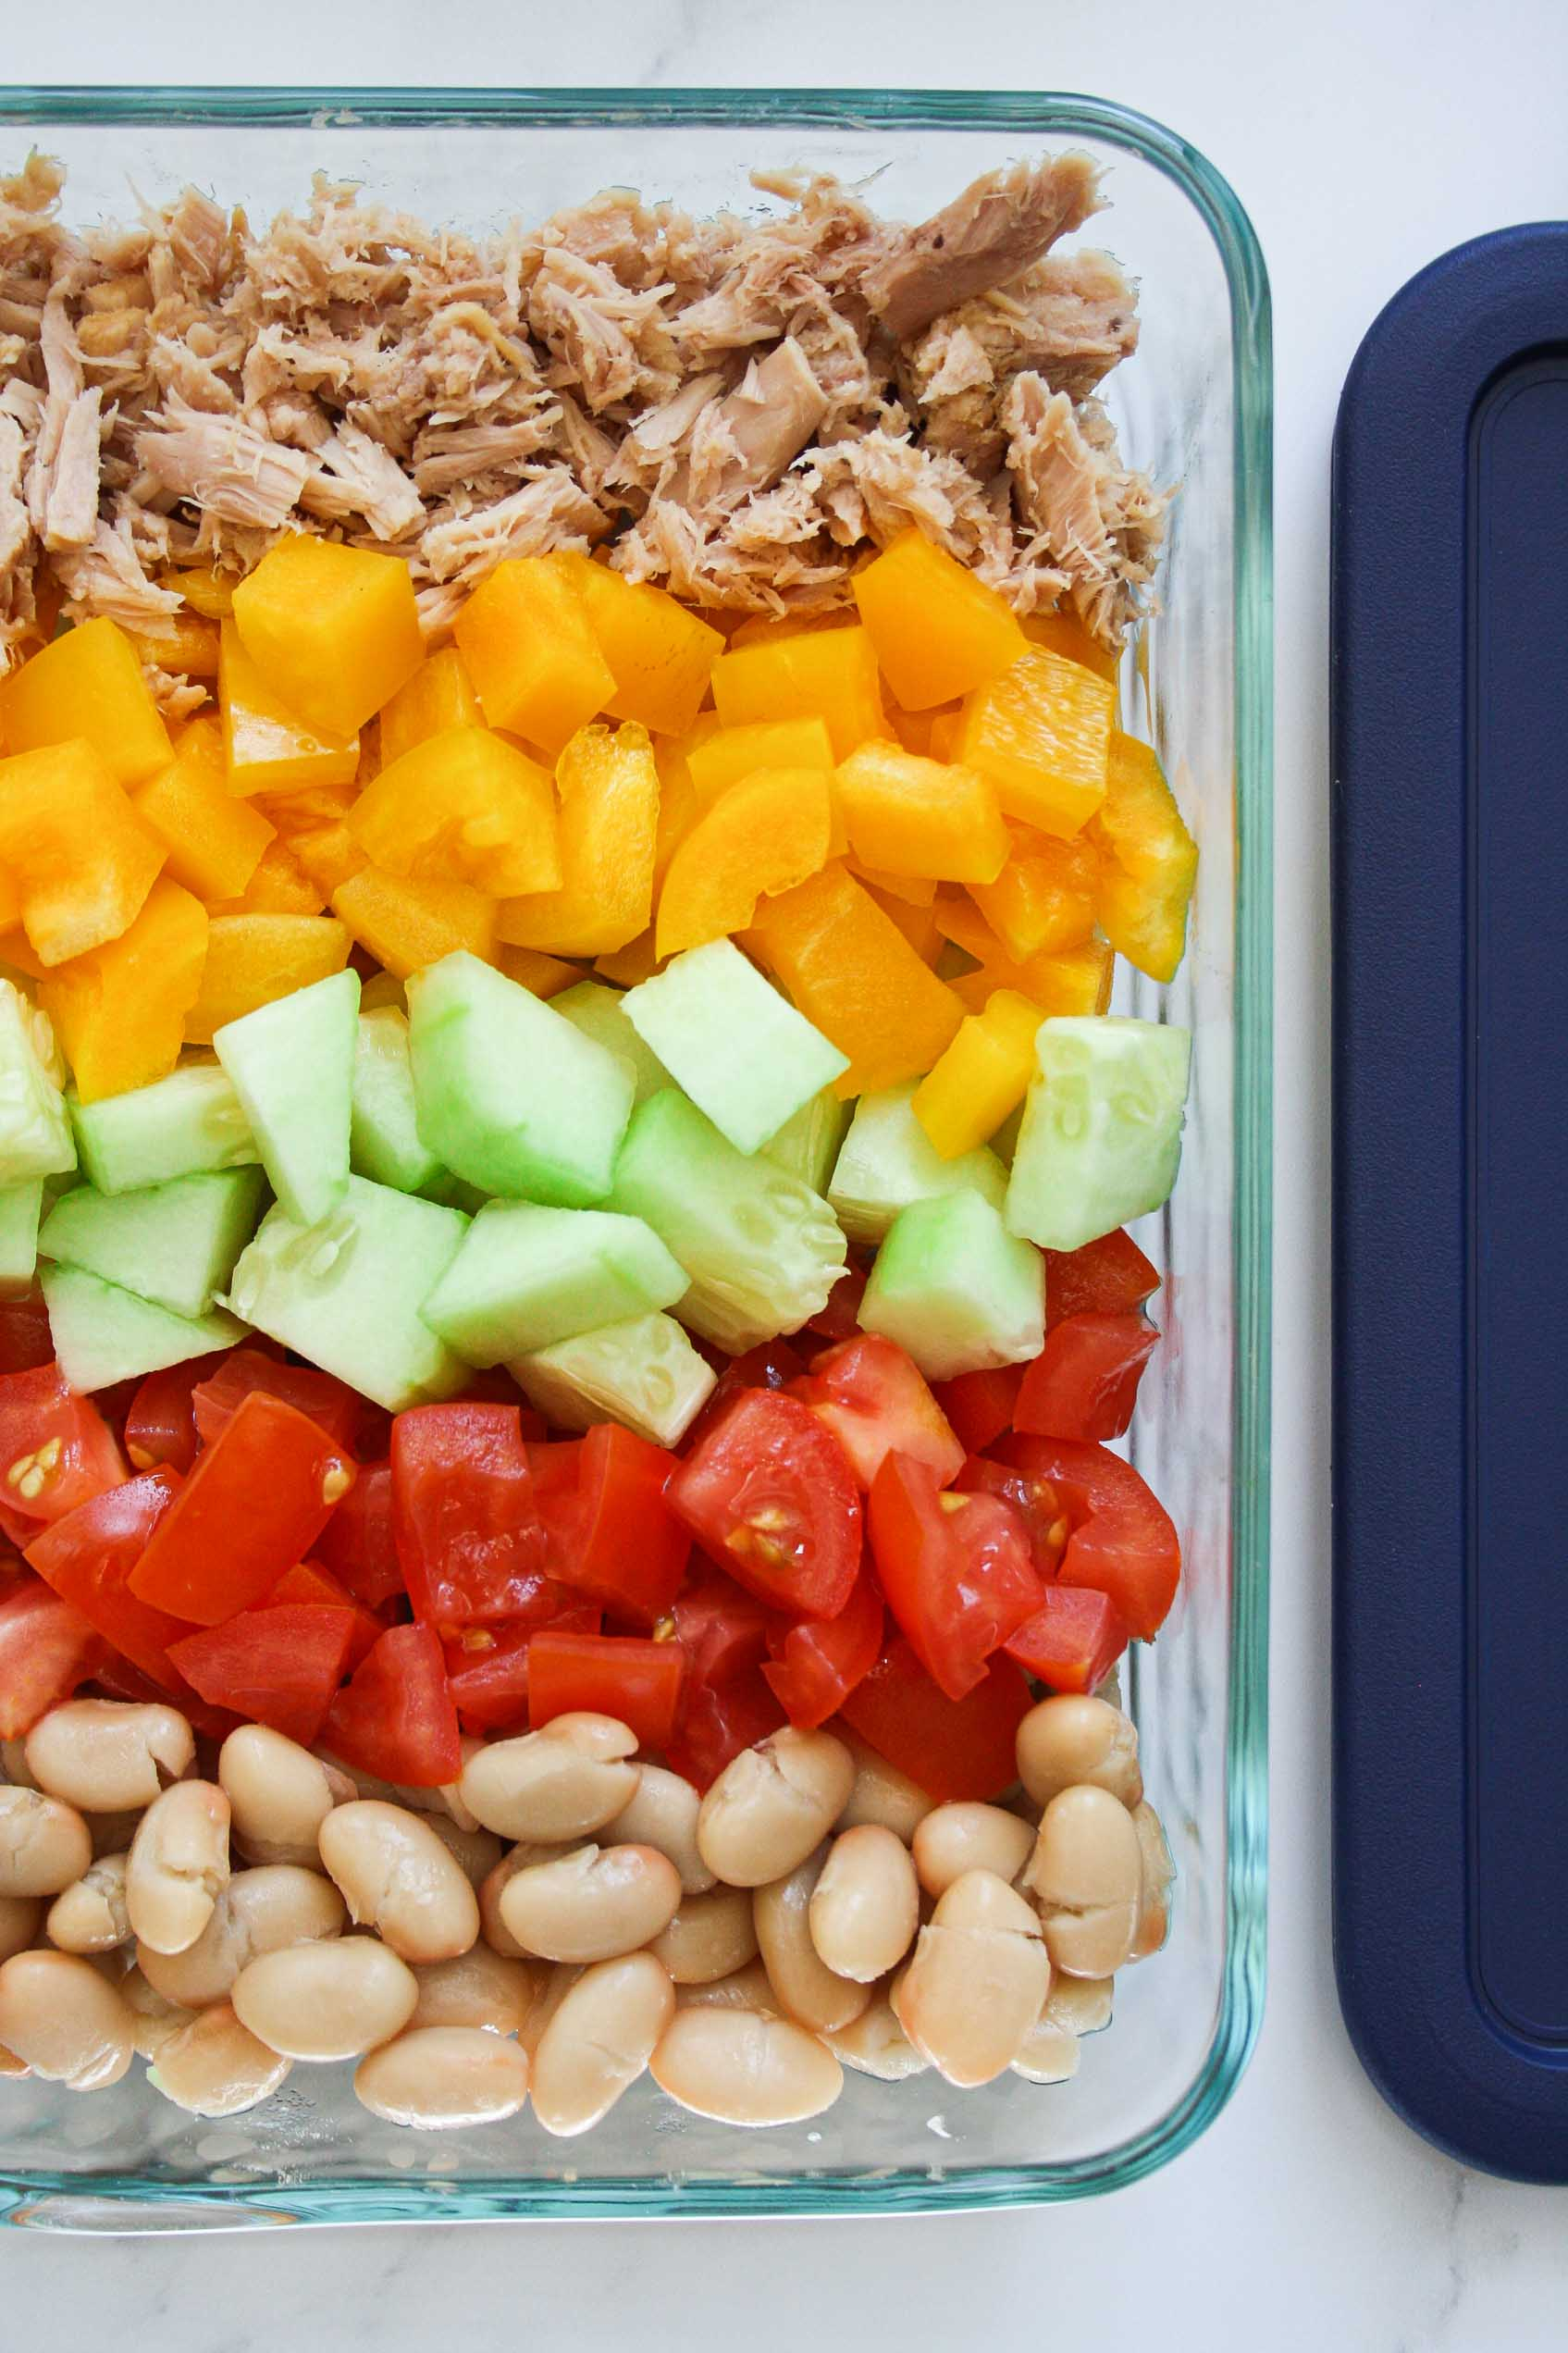 white beans, tomatoes, cucumber, yellow pepper and tuna salad arranged in a glass rectangular container